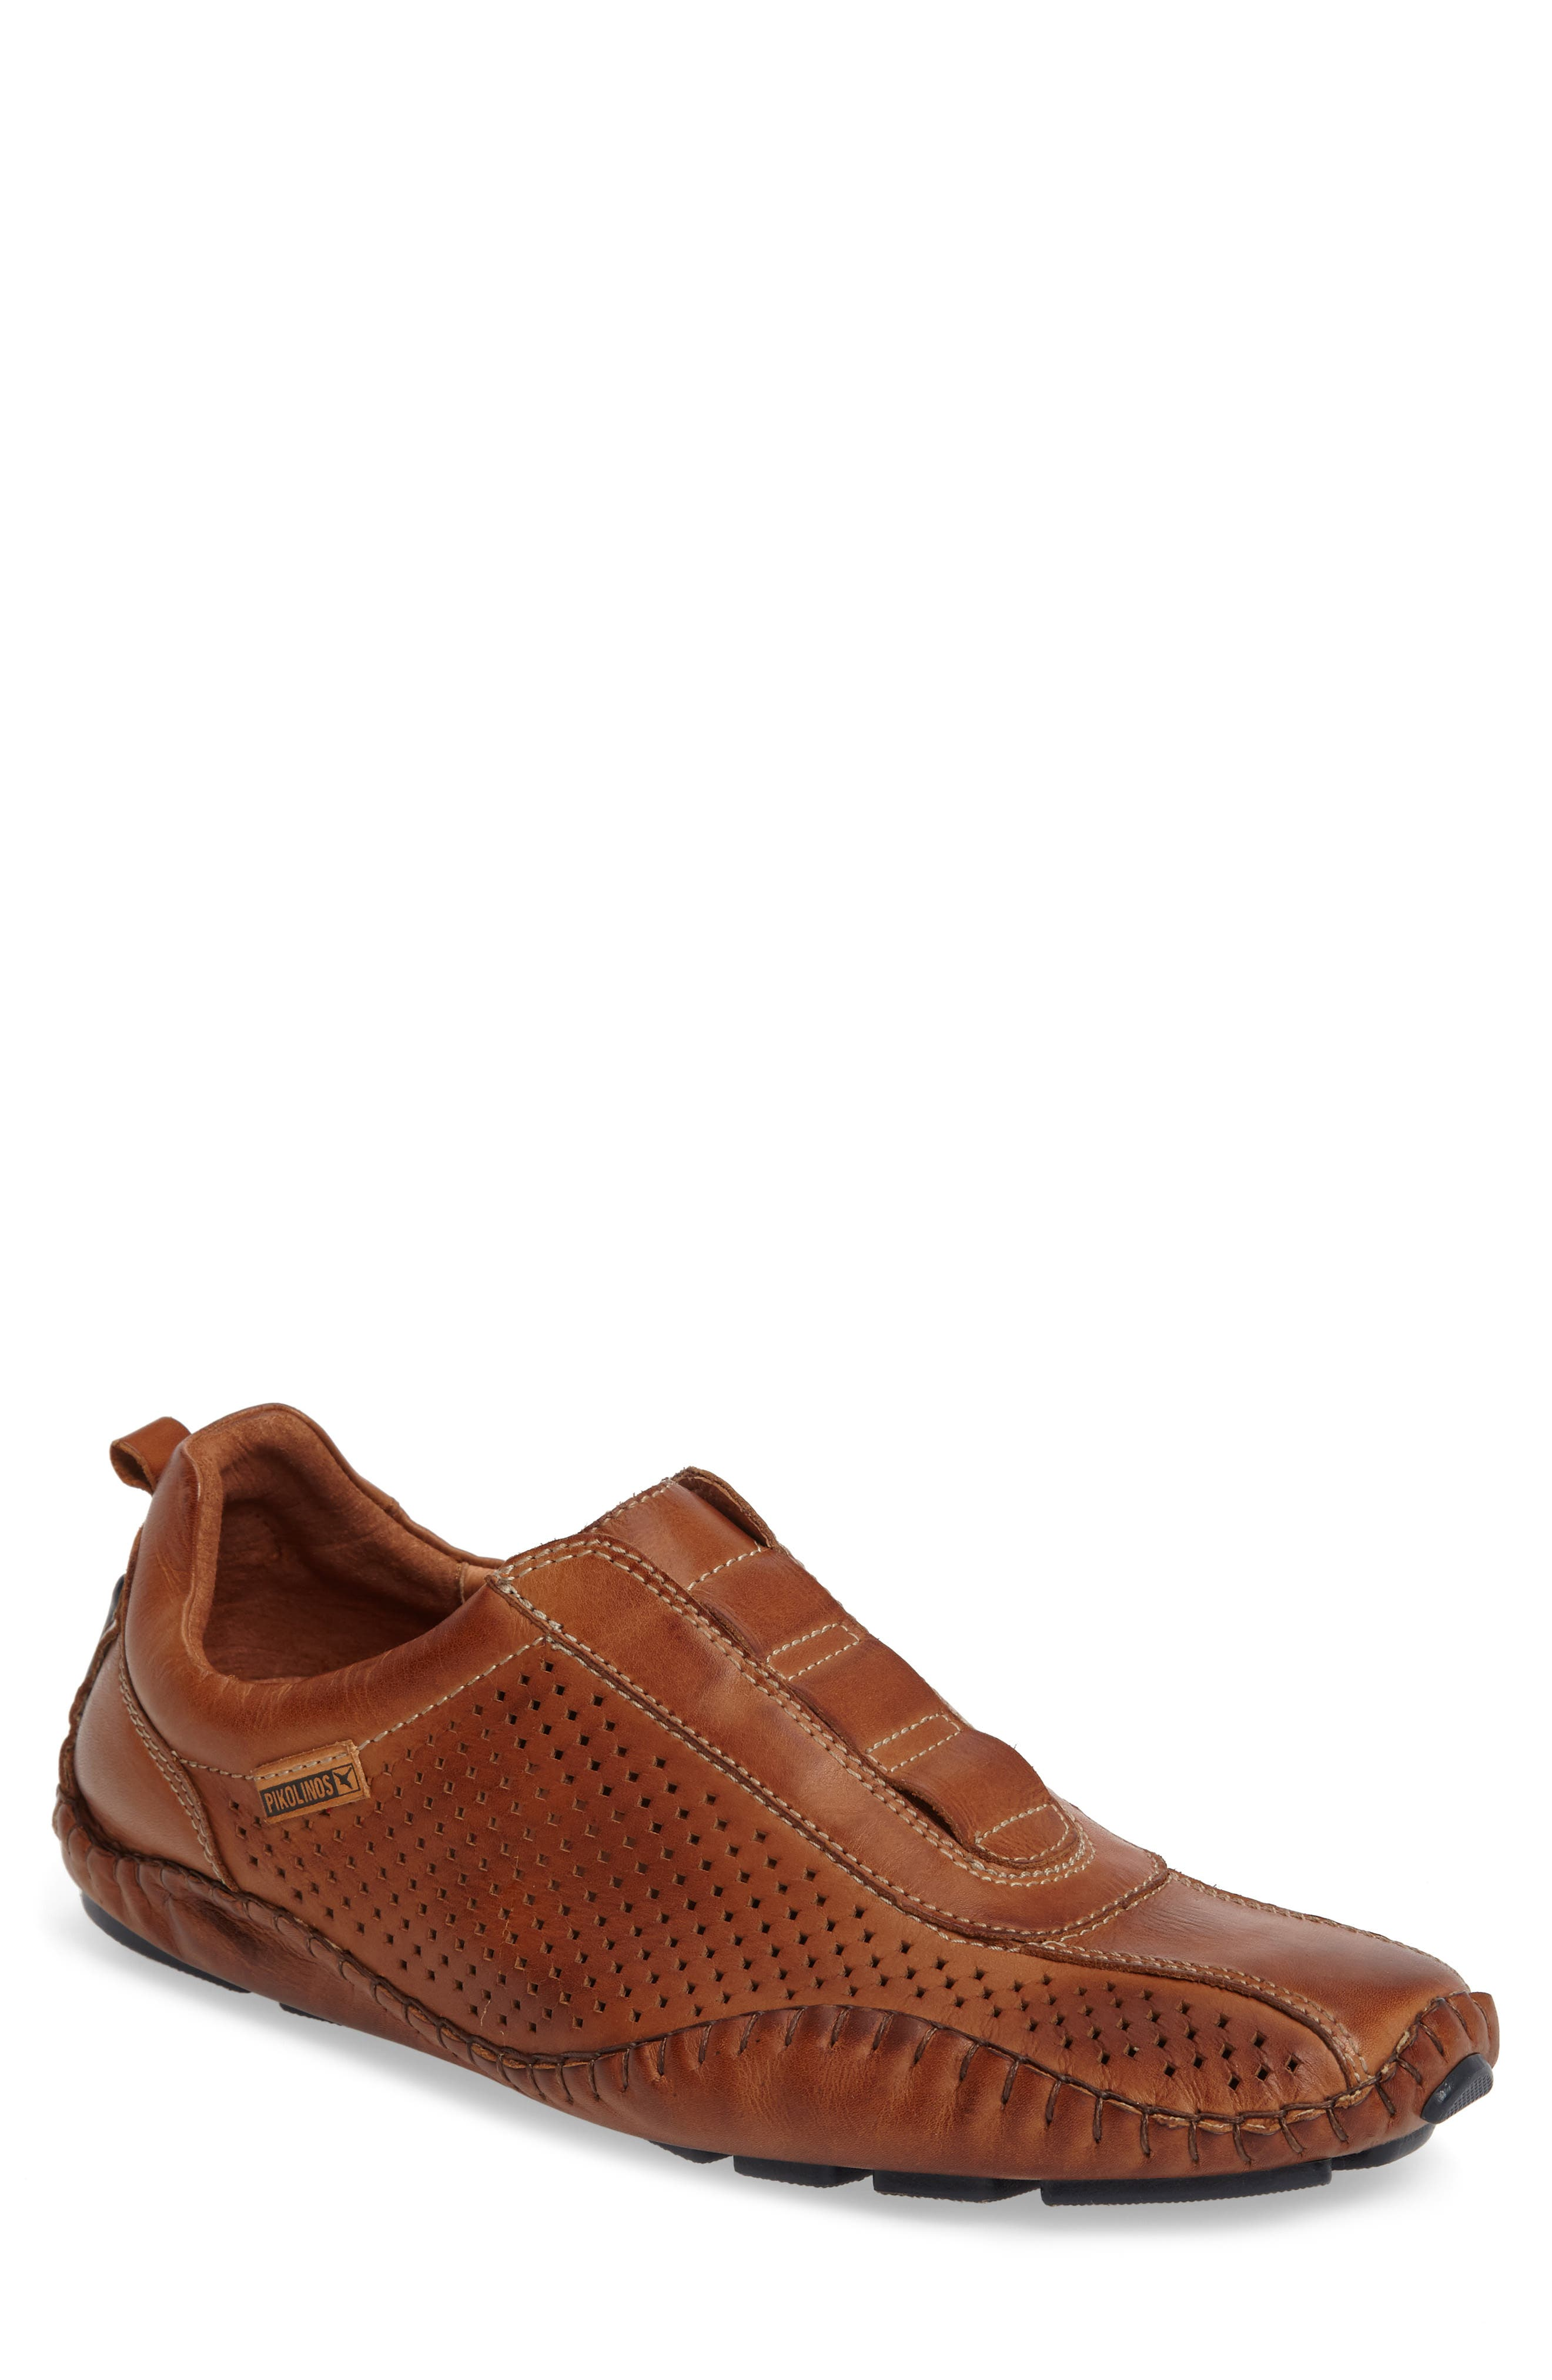 Fuencarral Driving Shoe,                             Main thumbnail 1, color,                             Brandy Leather